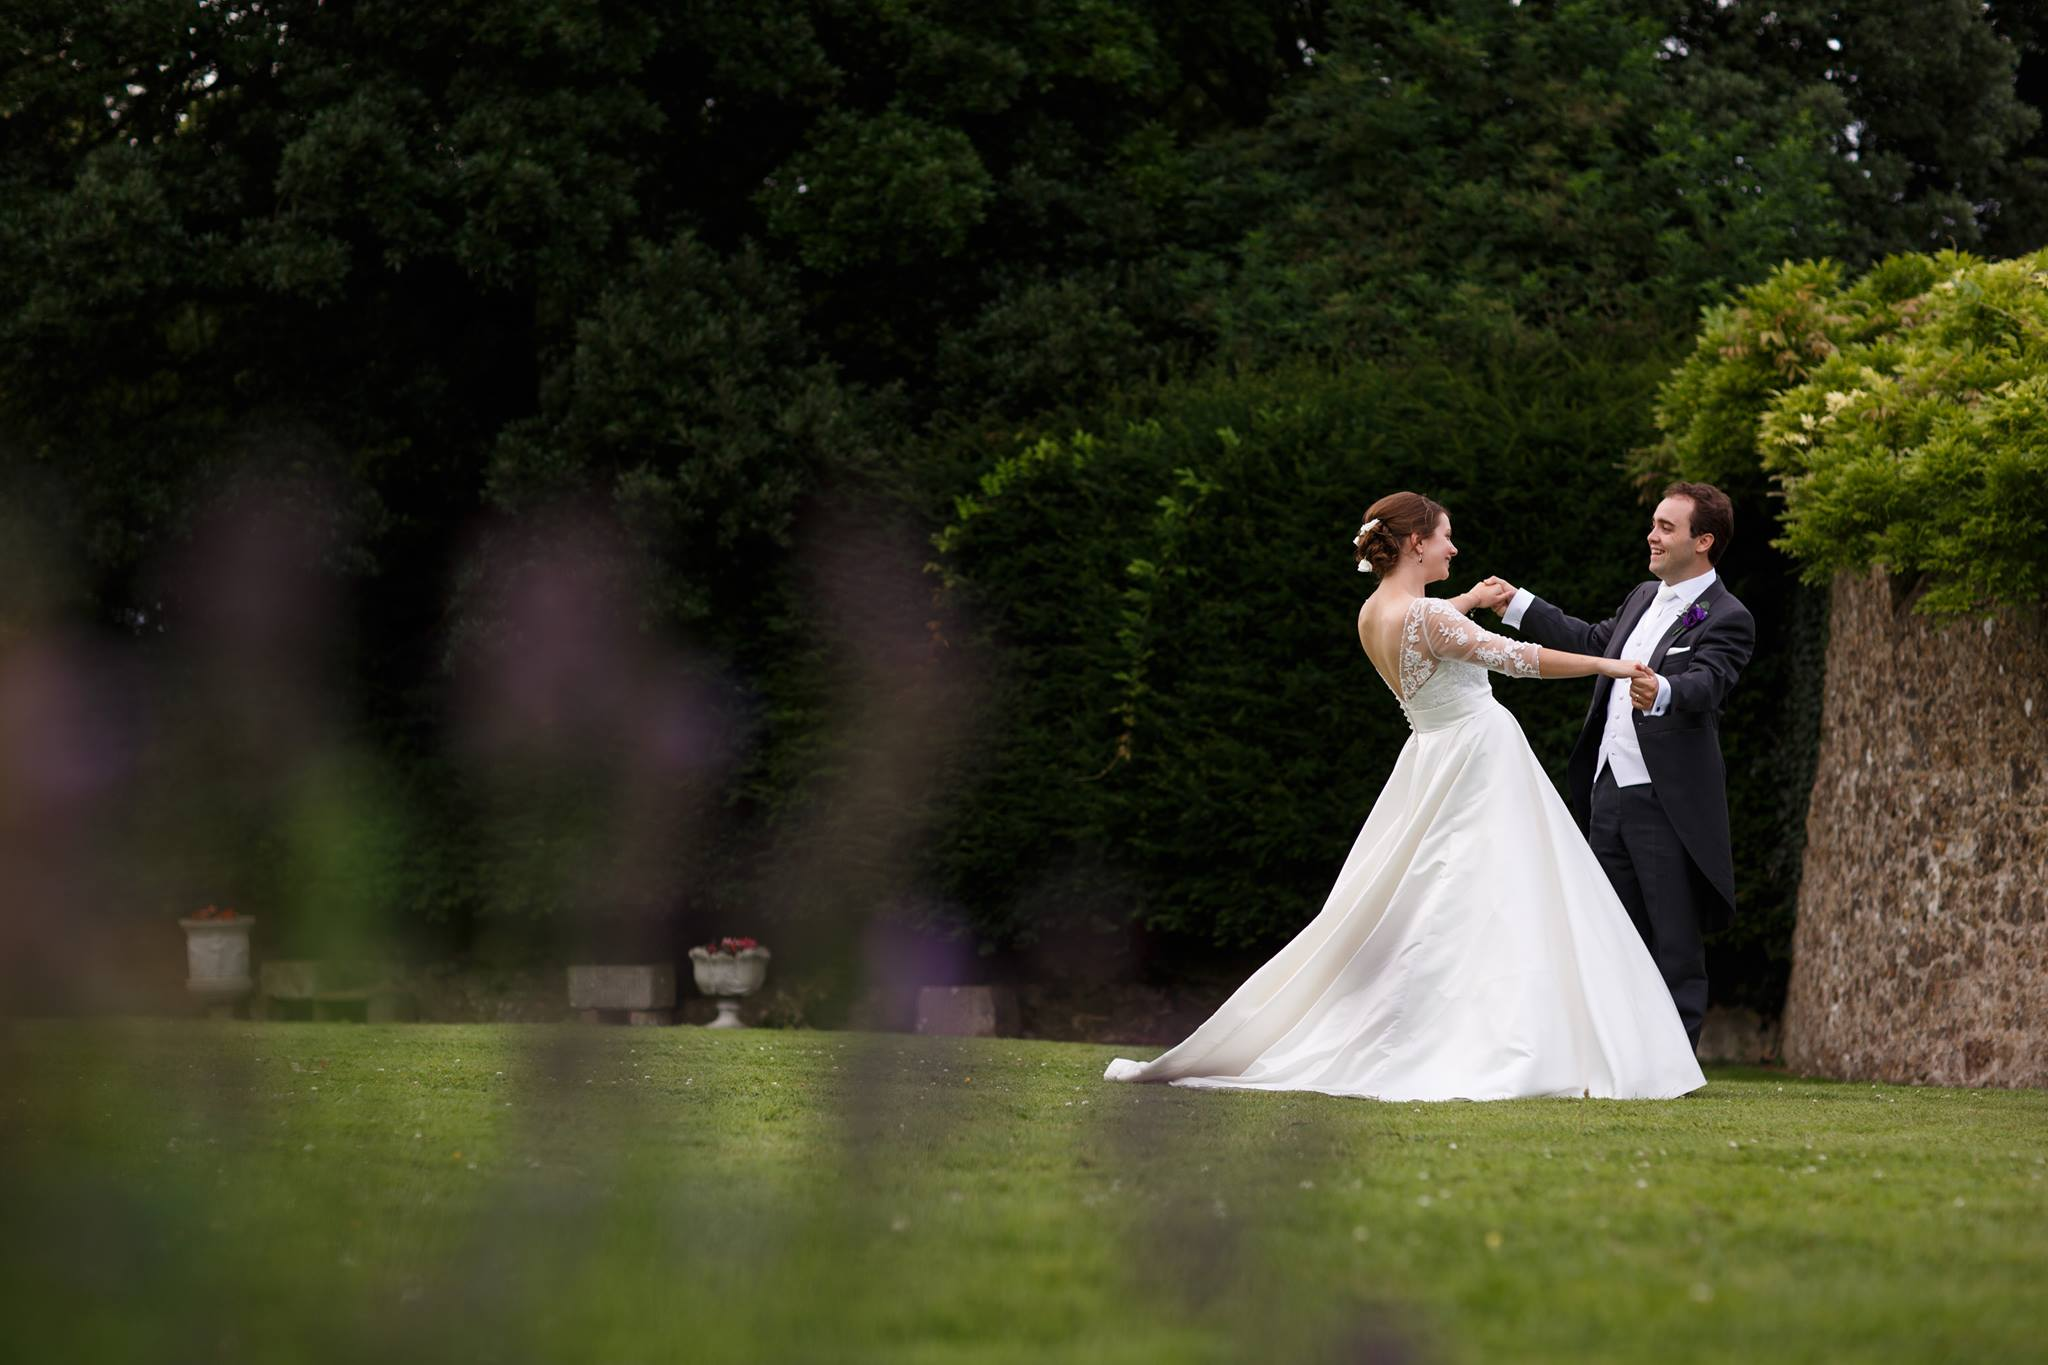 Social and personal: Young maestro gets married